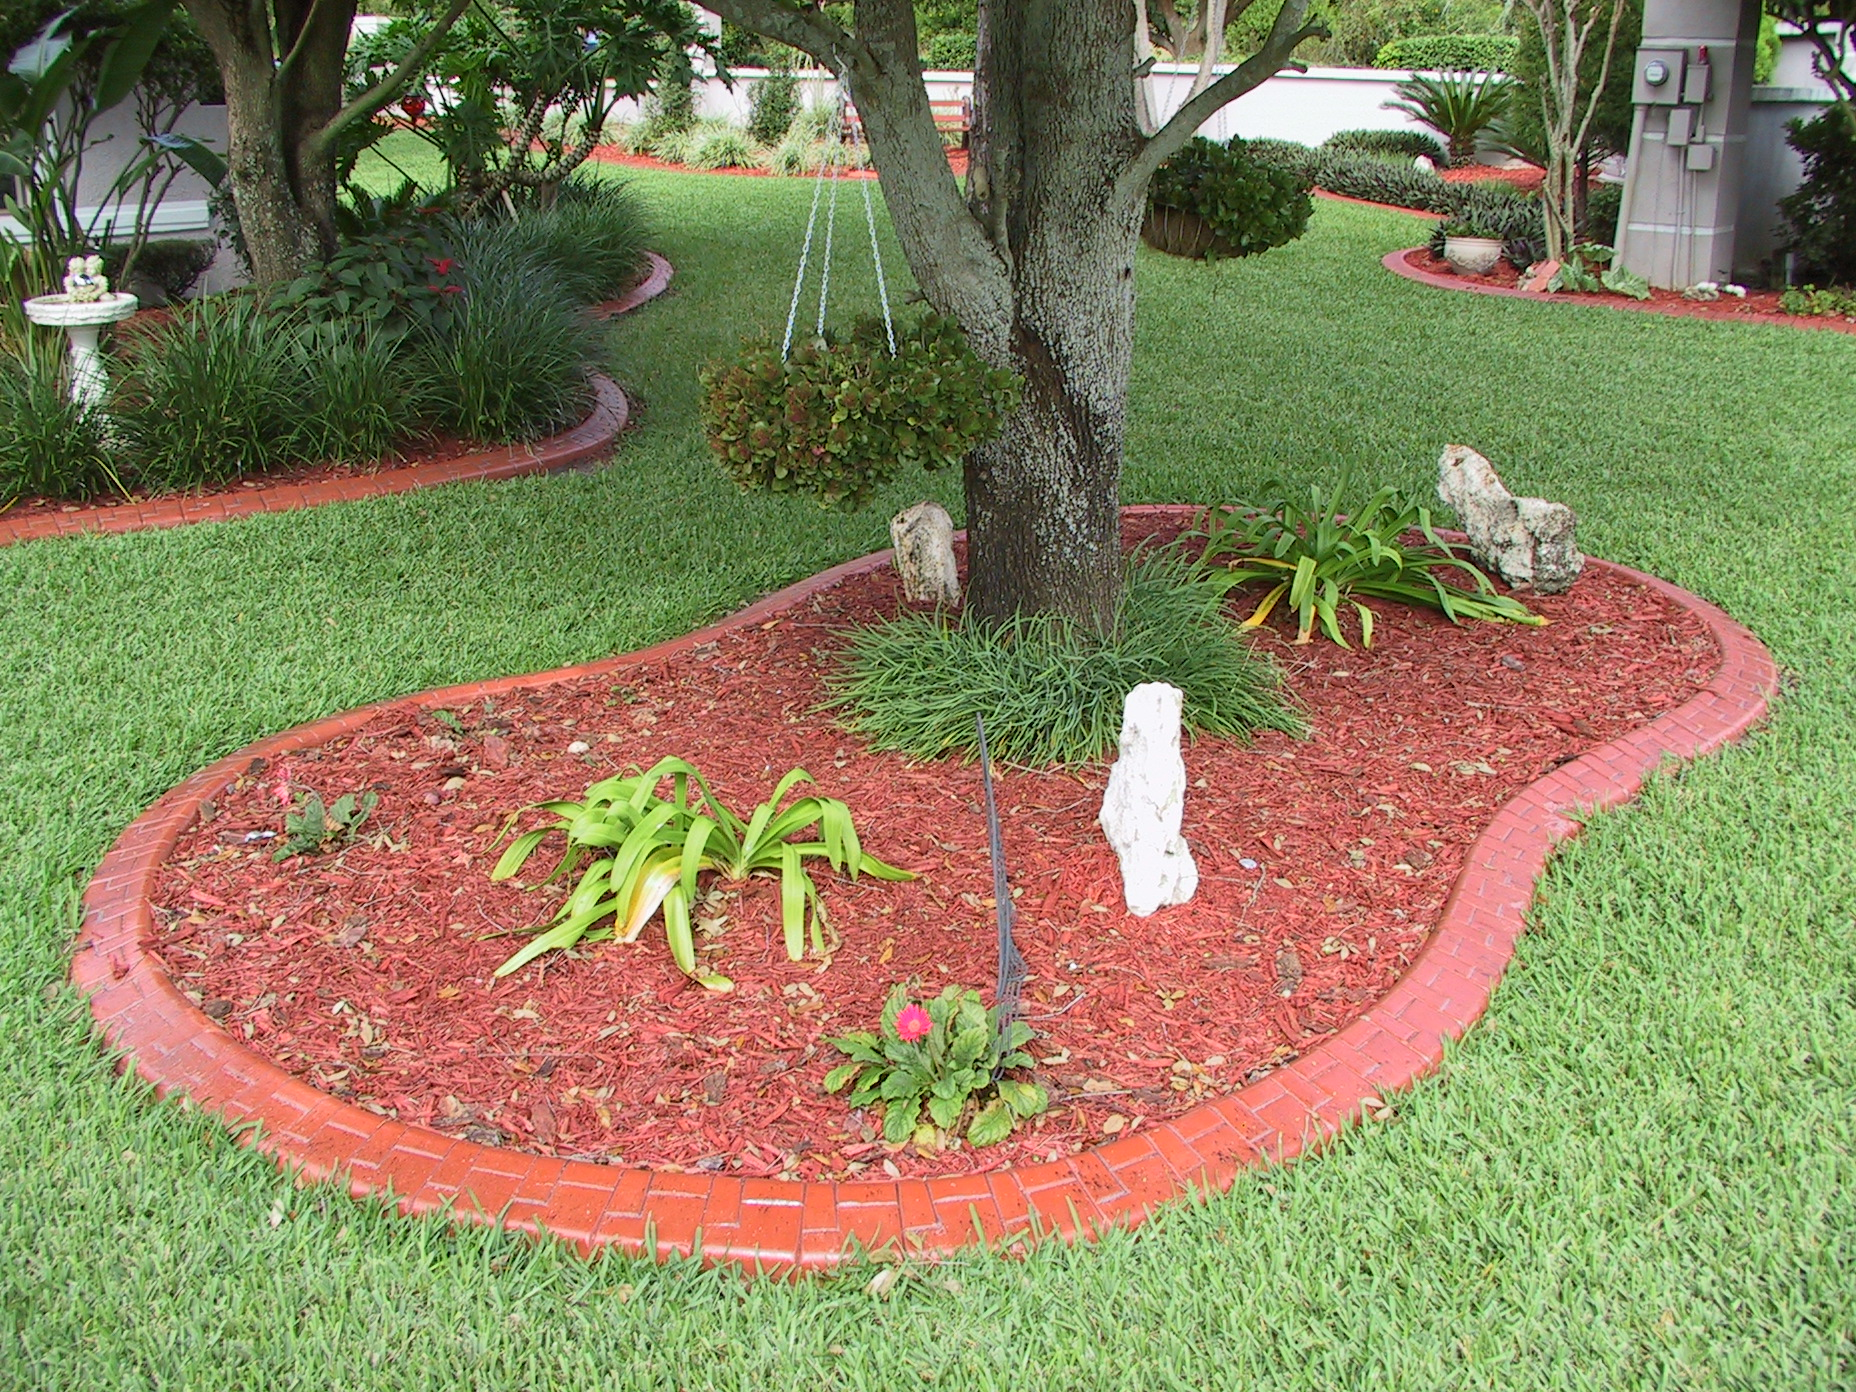 Decor edging bricks flower bed borders landscape for Mulch border ideas